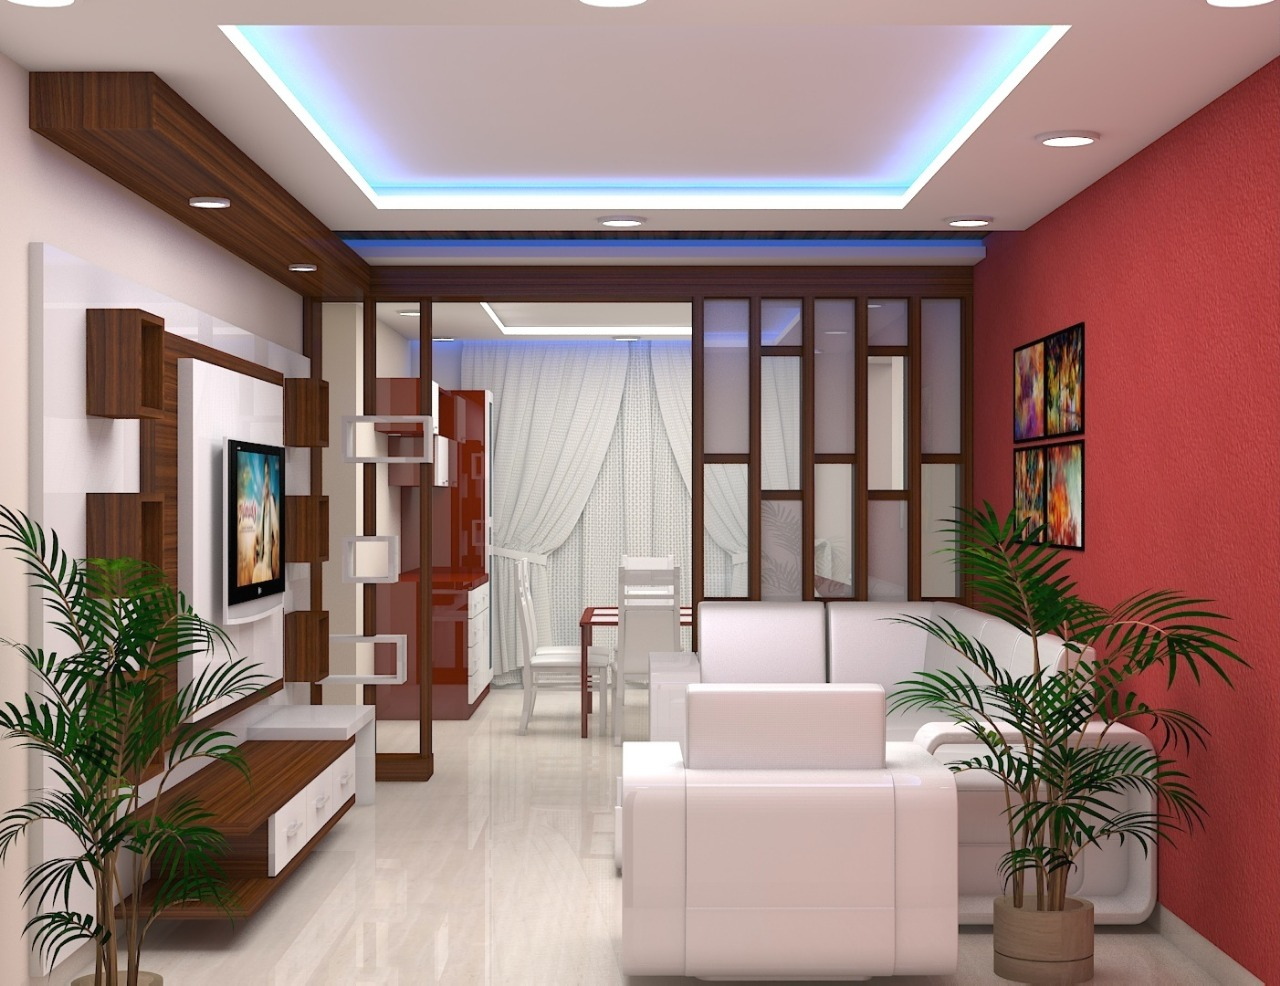 R7 INTERIORS, LOW COST INTERIOR DESIGNER IN HYDERABAD, LOW COST INTERIOR DESIGNER IN UPPAL, LOW COST INTERIOR DESIGNER IN MANIKONDA, LOW COST INTERIOR DESIGNER IN TOLICHOWKI,LOW COST INTERIOR DESIGNER IN GACCHIBOWL